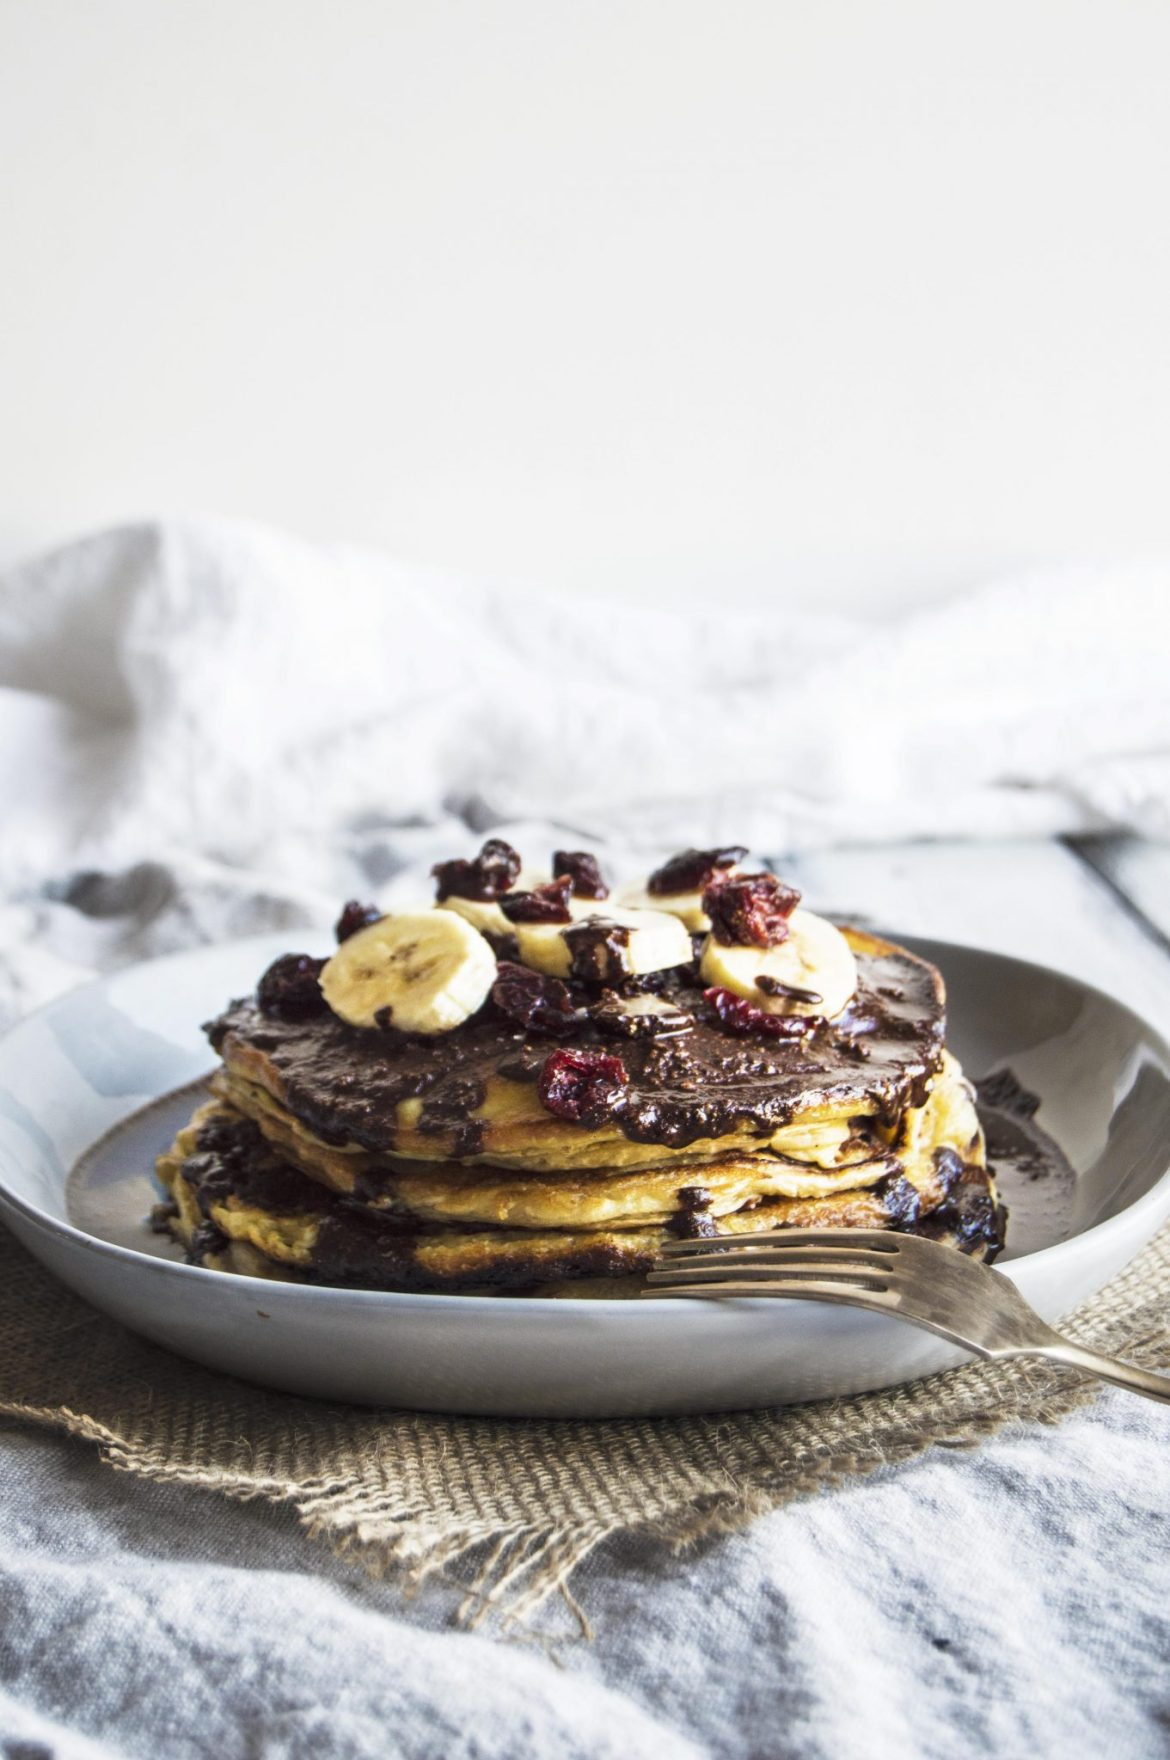 Vegan Banana Pancakes With Chocolate Hazelnut Sauce